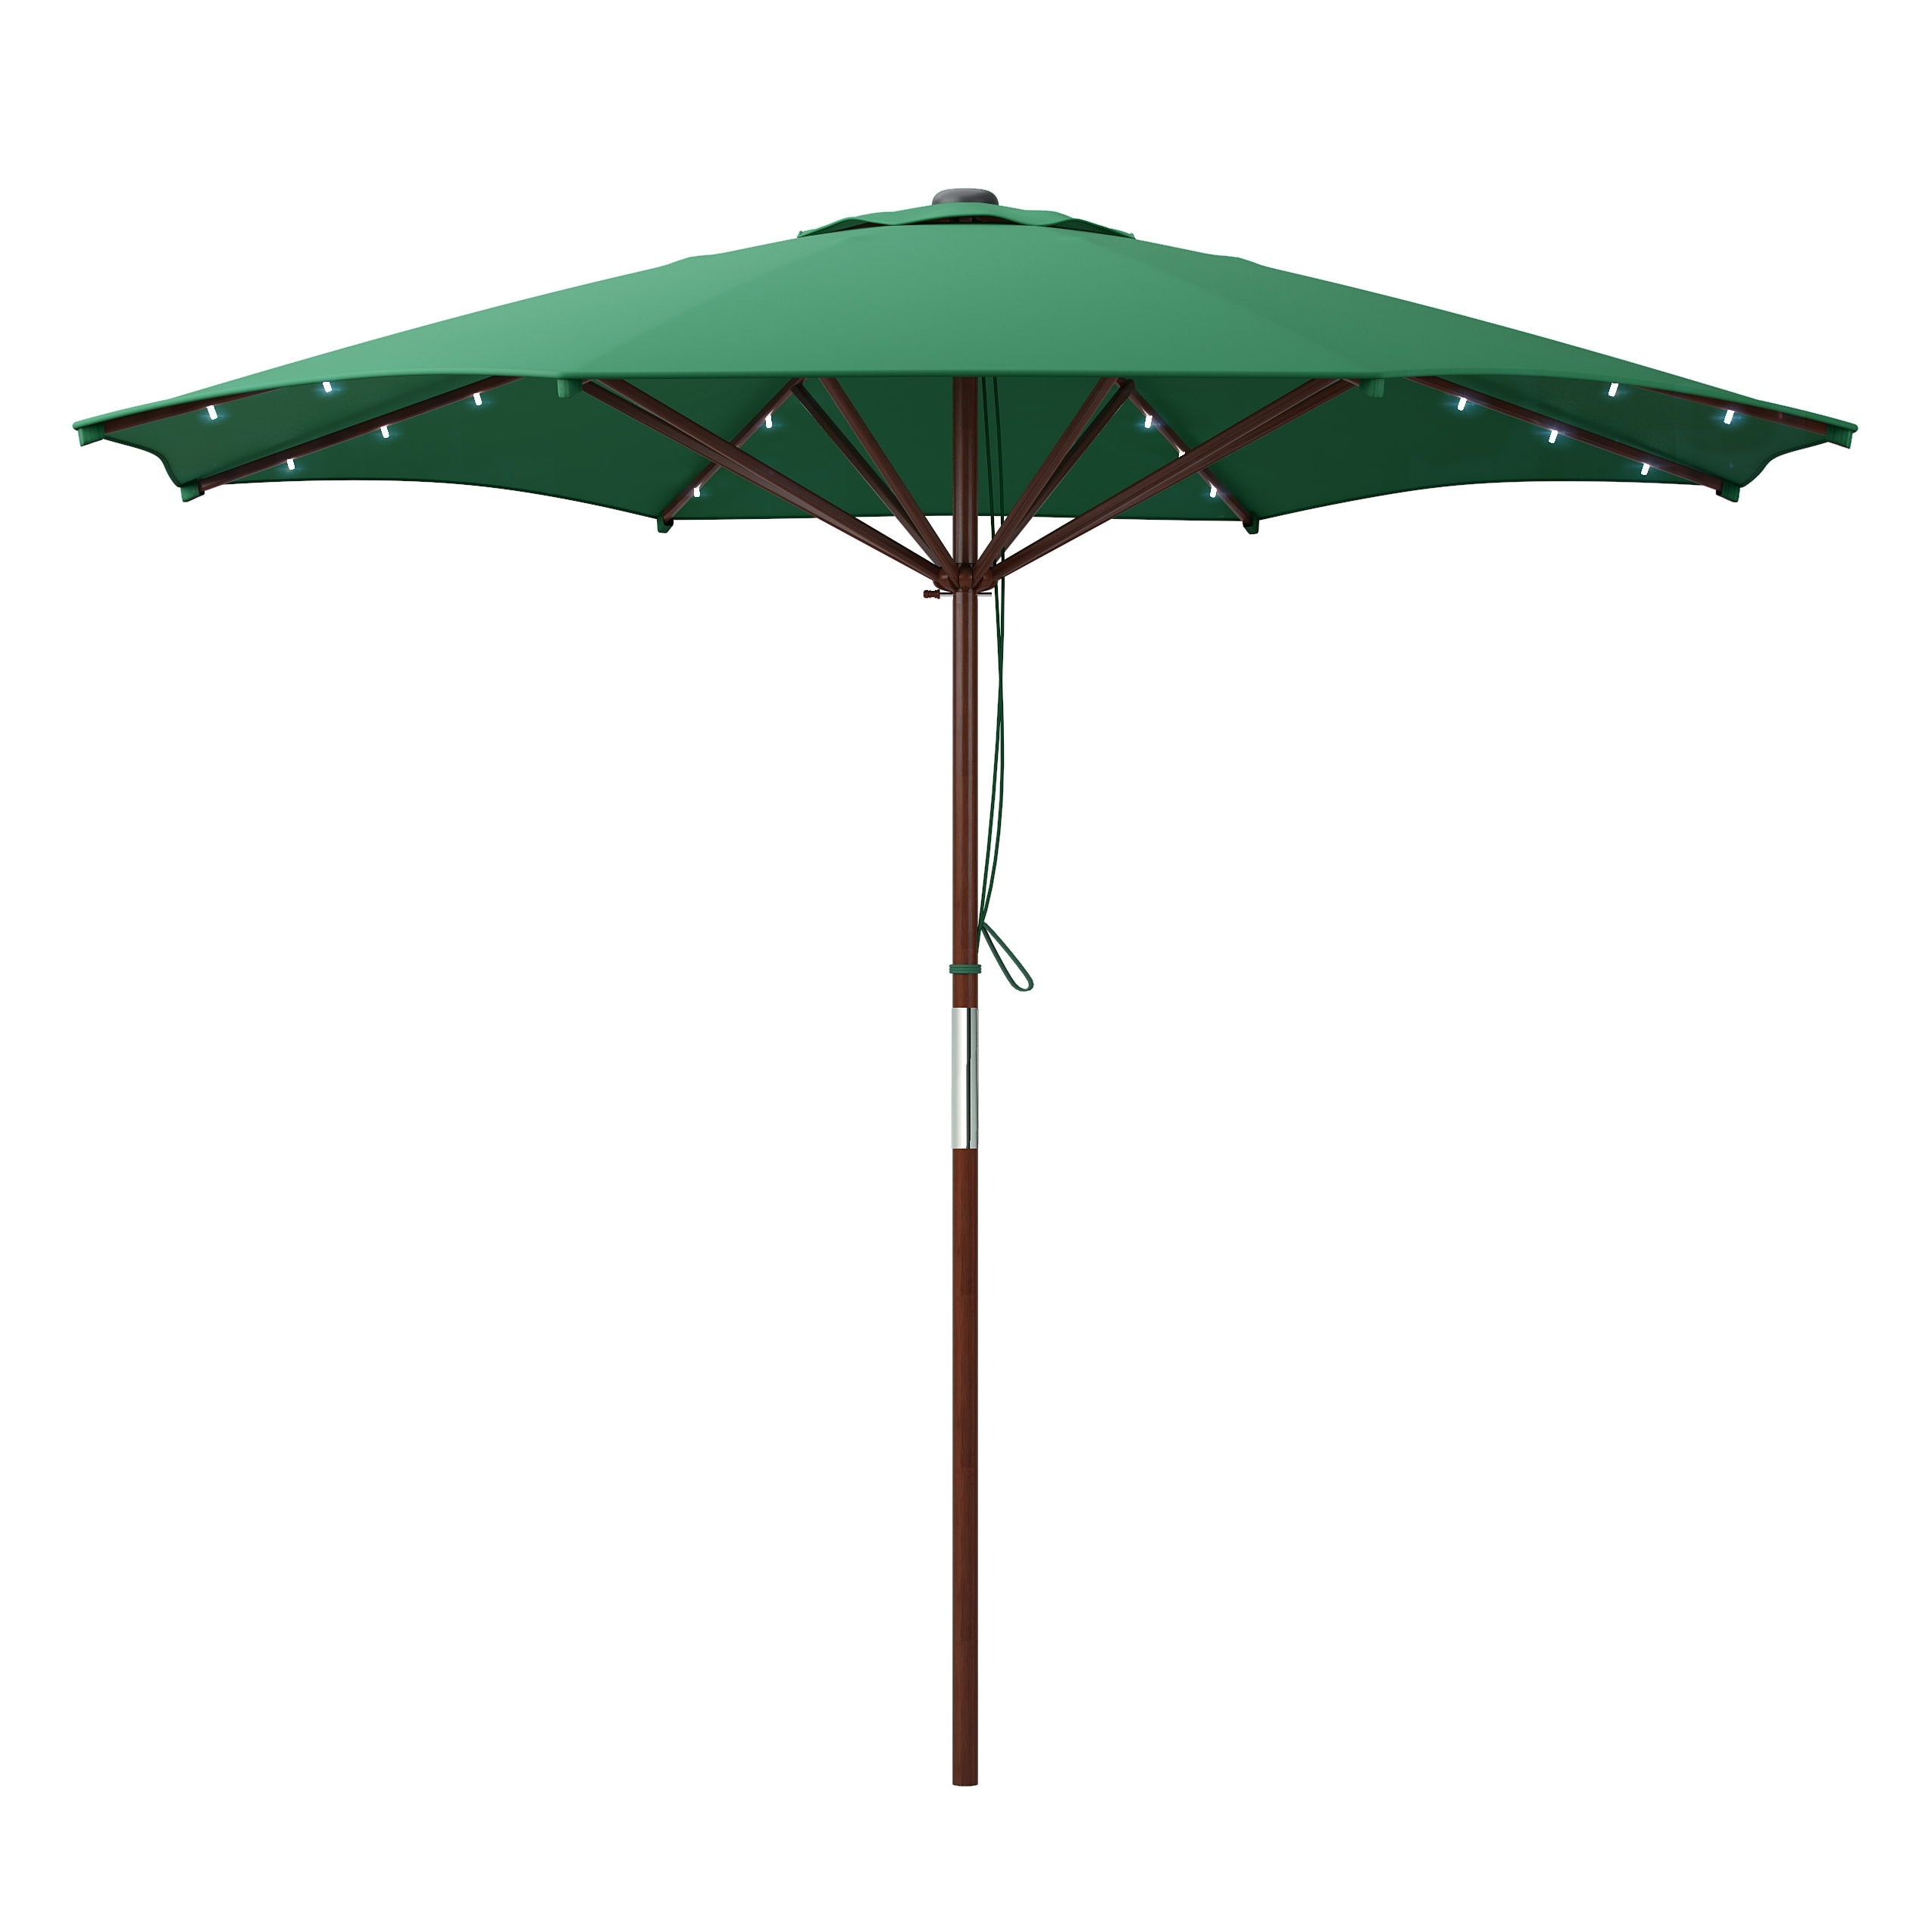 Favorite Patio Umbrellas With Solar Led Lights Within Green Patio Umbrella With Solar Power Led Lights (Gallery 18 of 20)